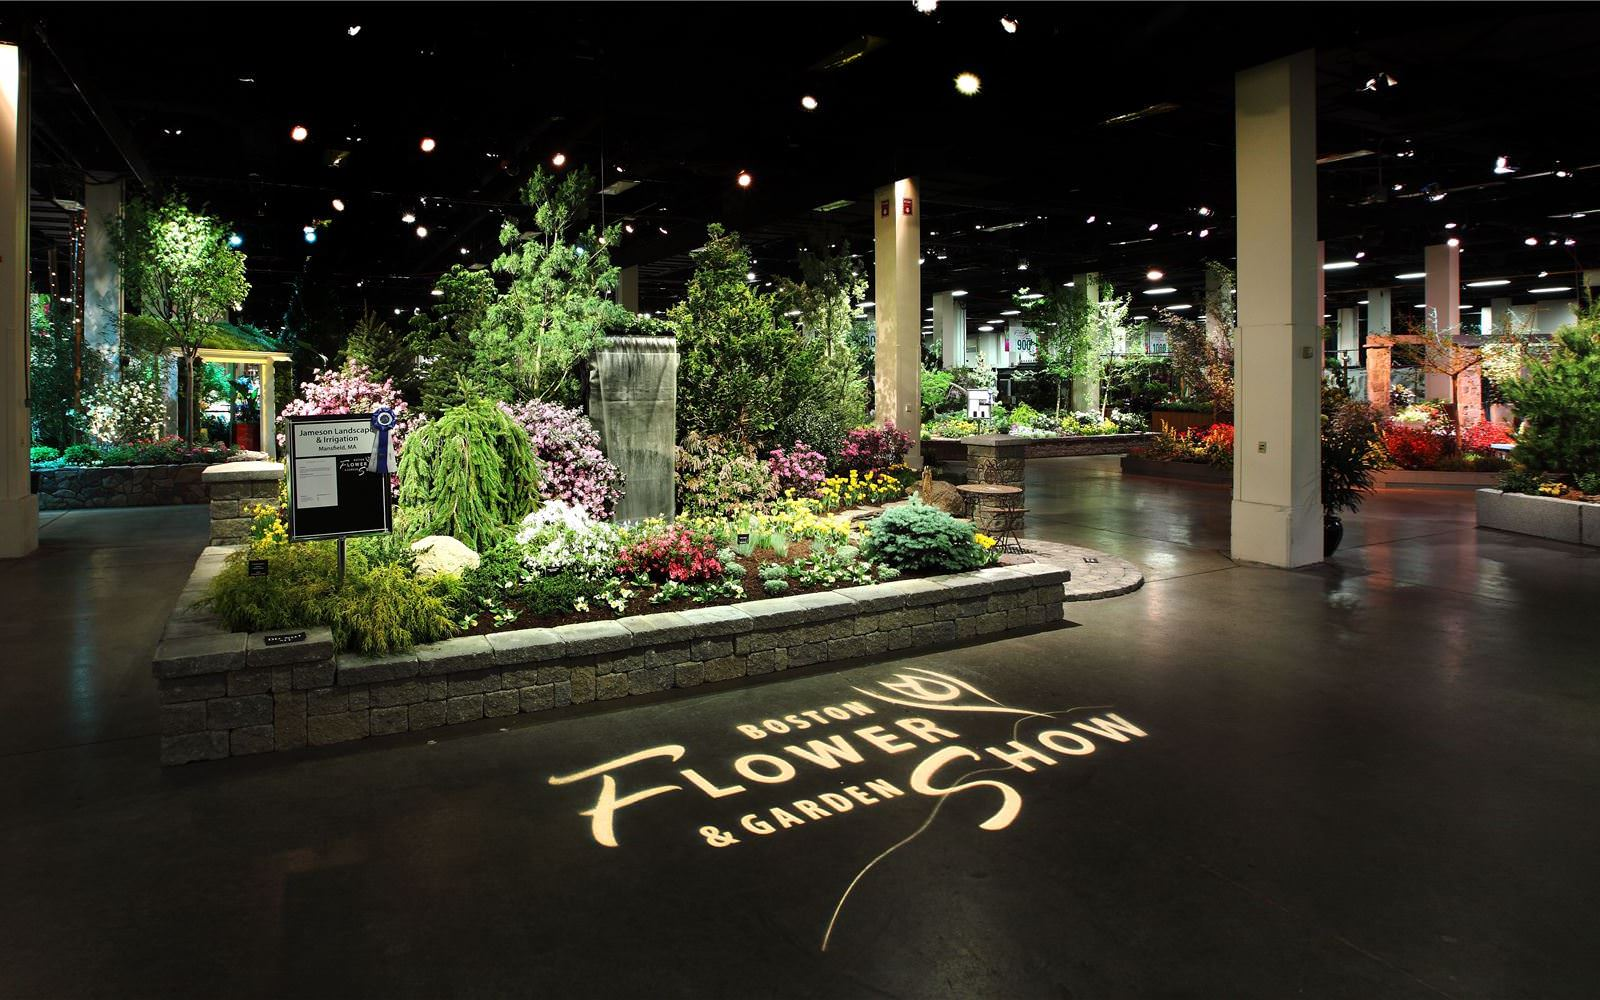 Boston Flower Show & Faneuil Hall Marketplace – VIP Tour & Charter Bu